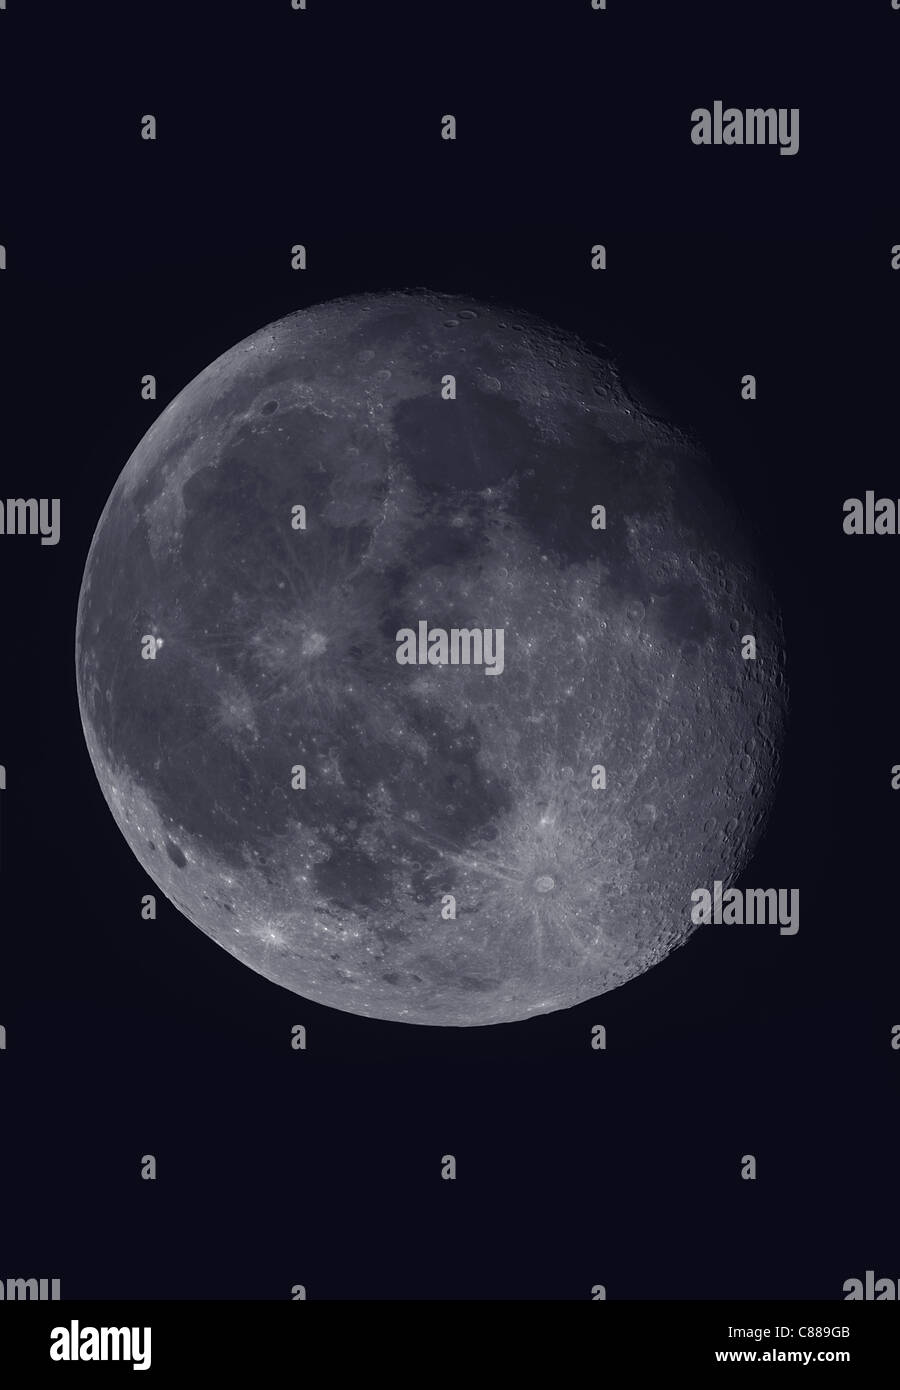 moon phase stockfotos moon phase bilder alamy. Black Bedroom Furniture Sets. Home Design Ideas